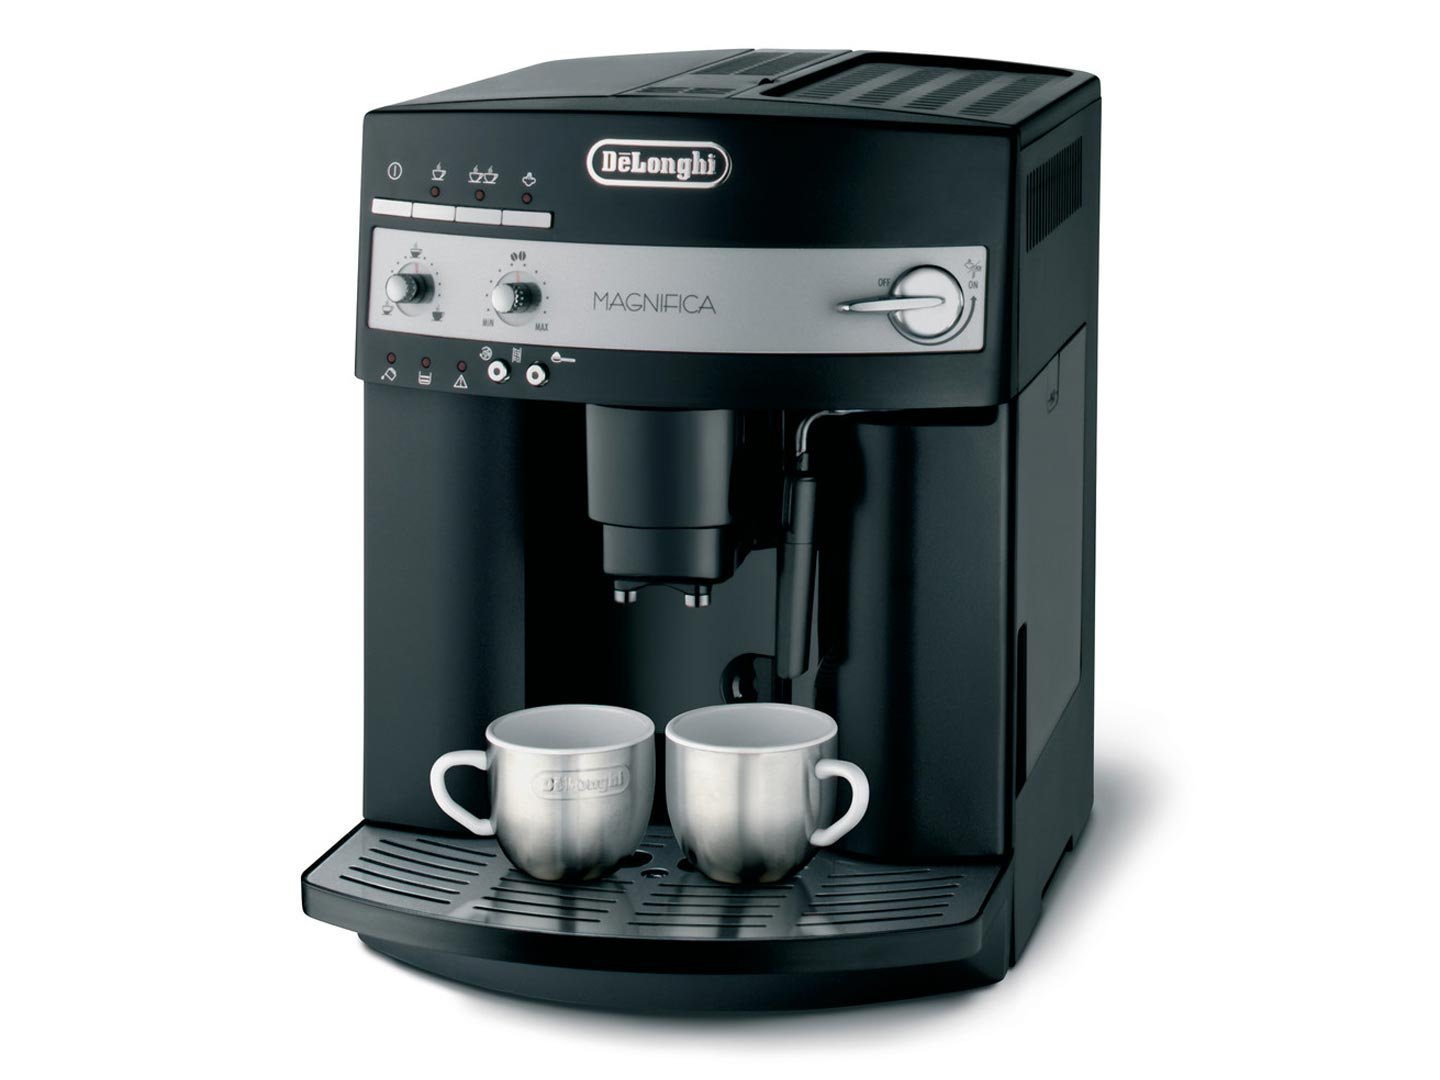 cafeti re expresso grains delonghi esam 300 b notre test complet et notre avis. Black Bedroom Furniture Sets. Home Design Ideas